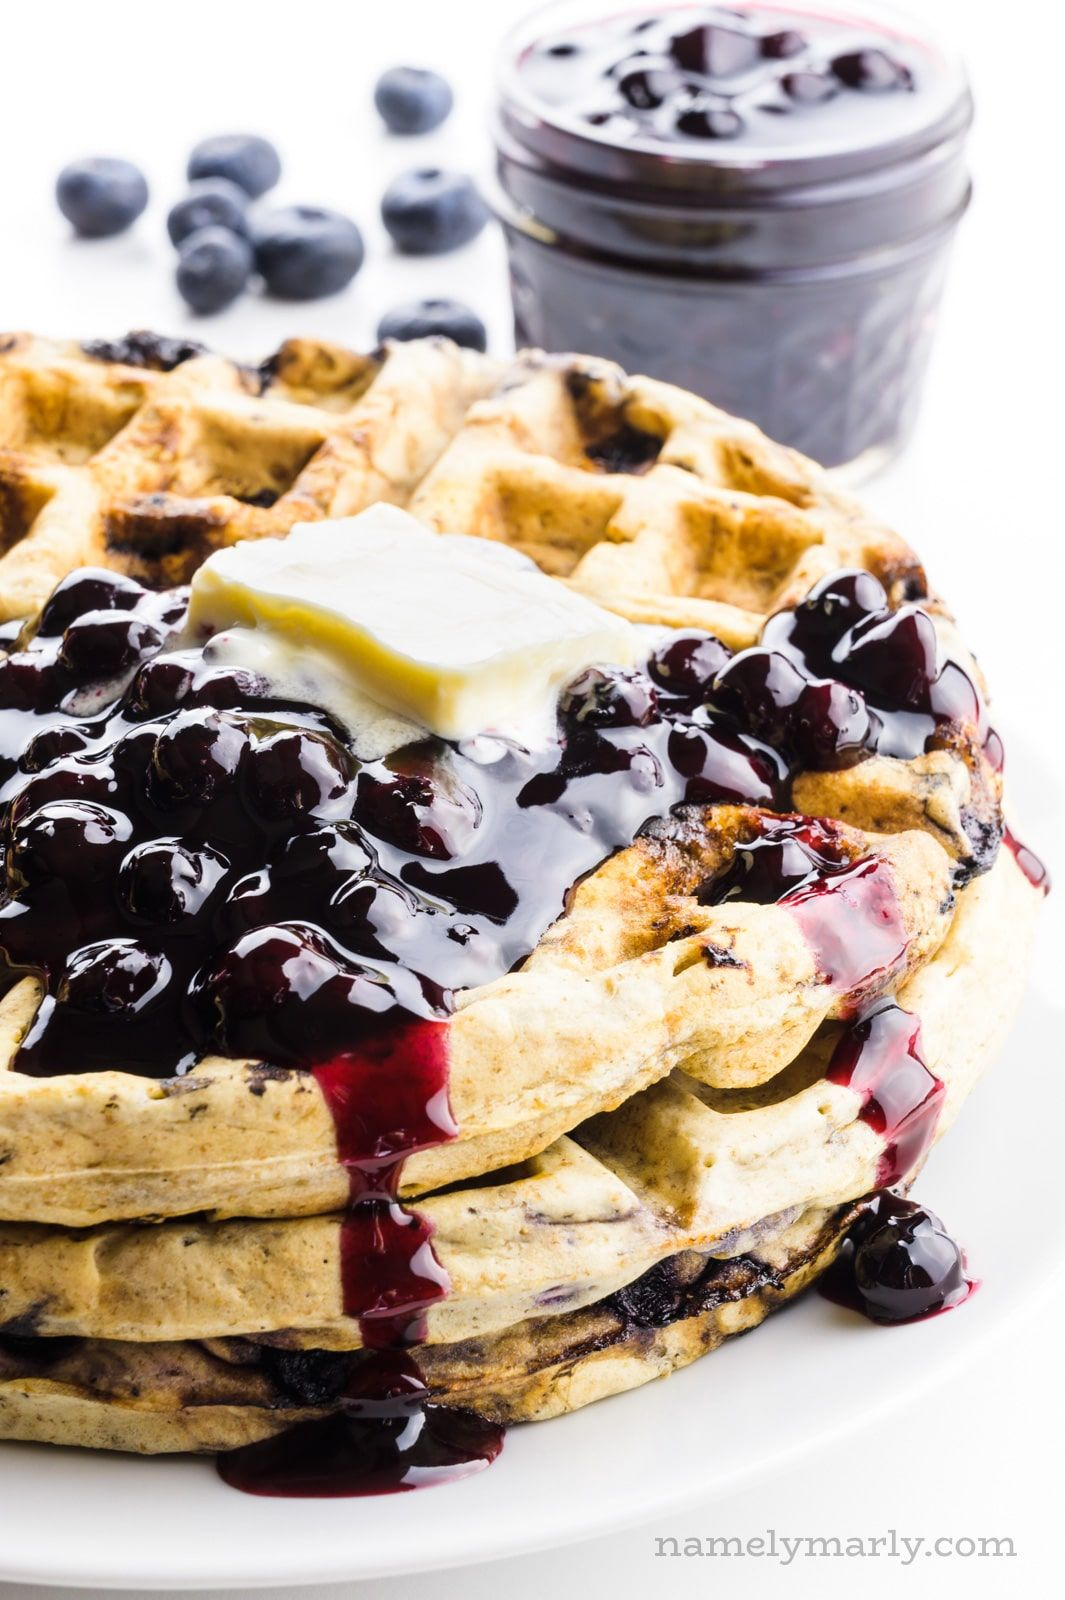 Want The Best Blueberry Waffles You Want Them With Lots Of Juicy Blueberries These Simple Waffles B In 2020 Blueberry Waffles Blueberry Waffles Recipe Waffle Recipes